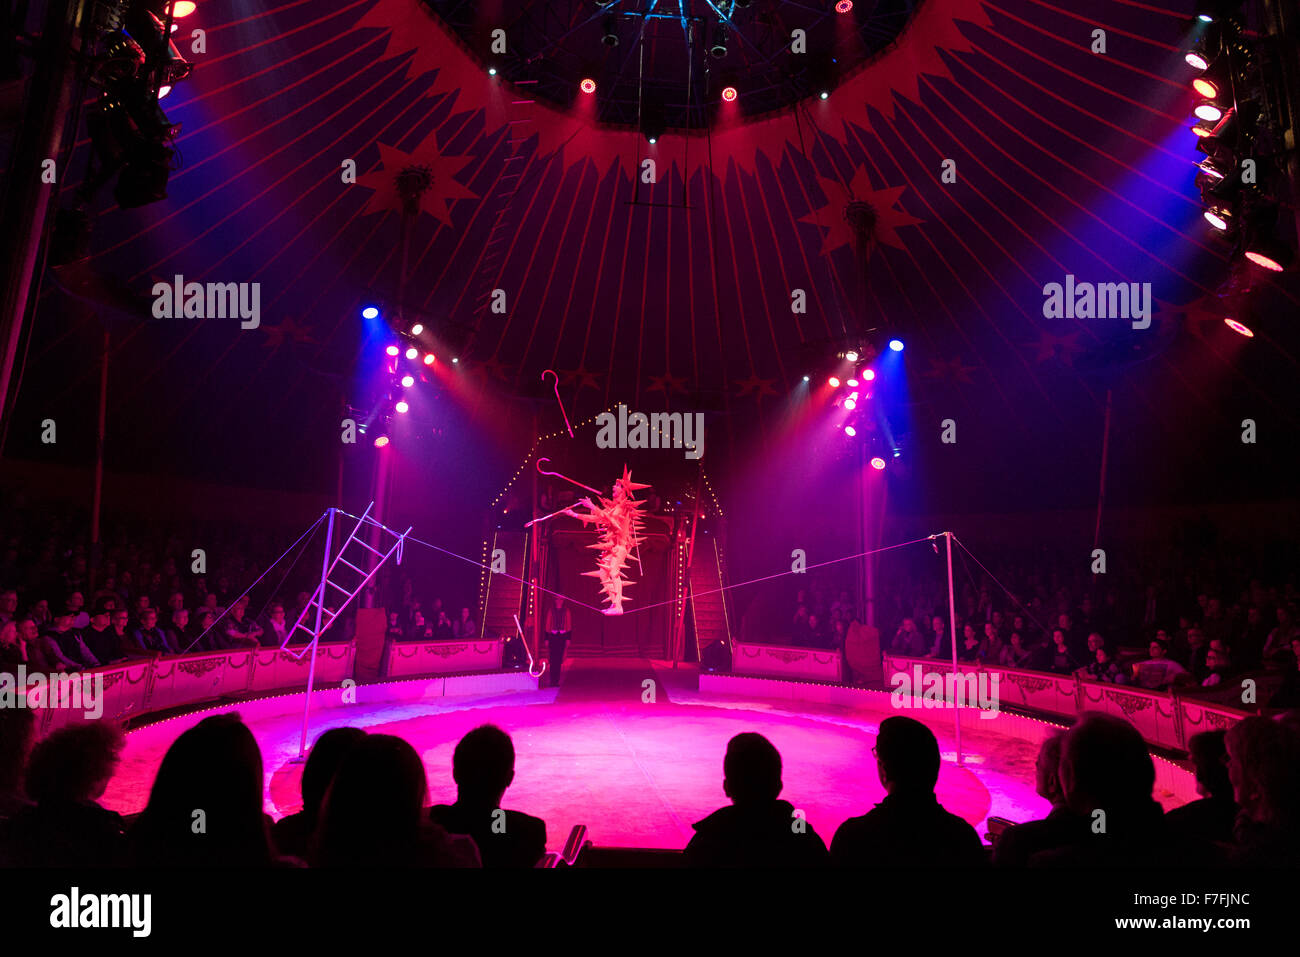 Artists of the Roncalli Circus (Andrej Ivakhnenko on a slackline) perform their show 'Salto Vitale'. - Stock Image